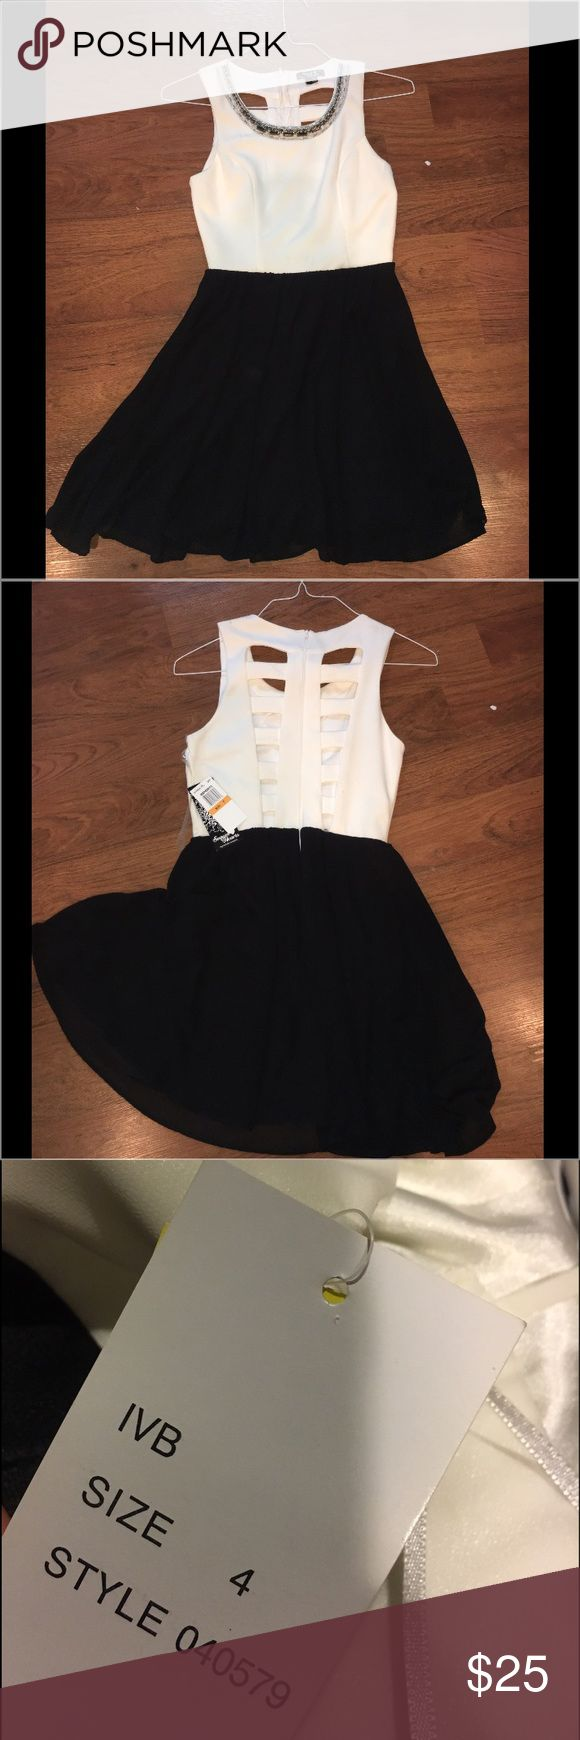 Black and white dress Can be used as a business dress or semi formal Dresses